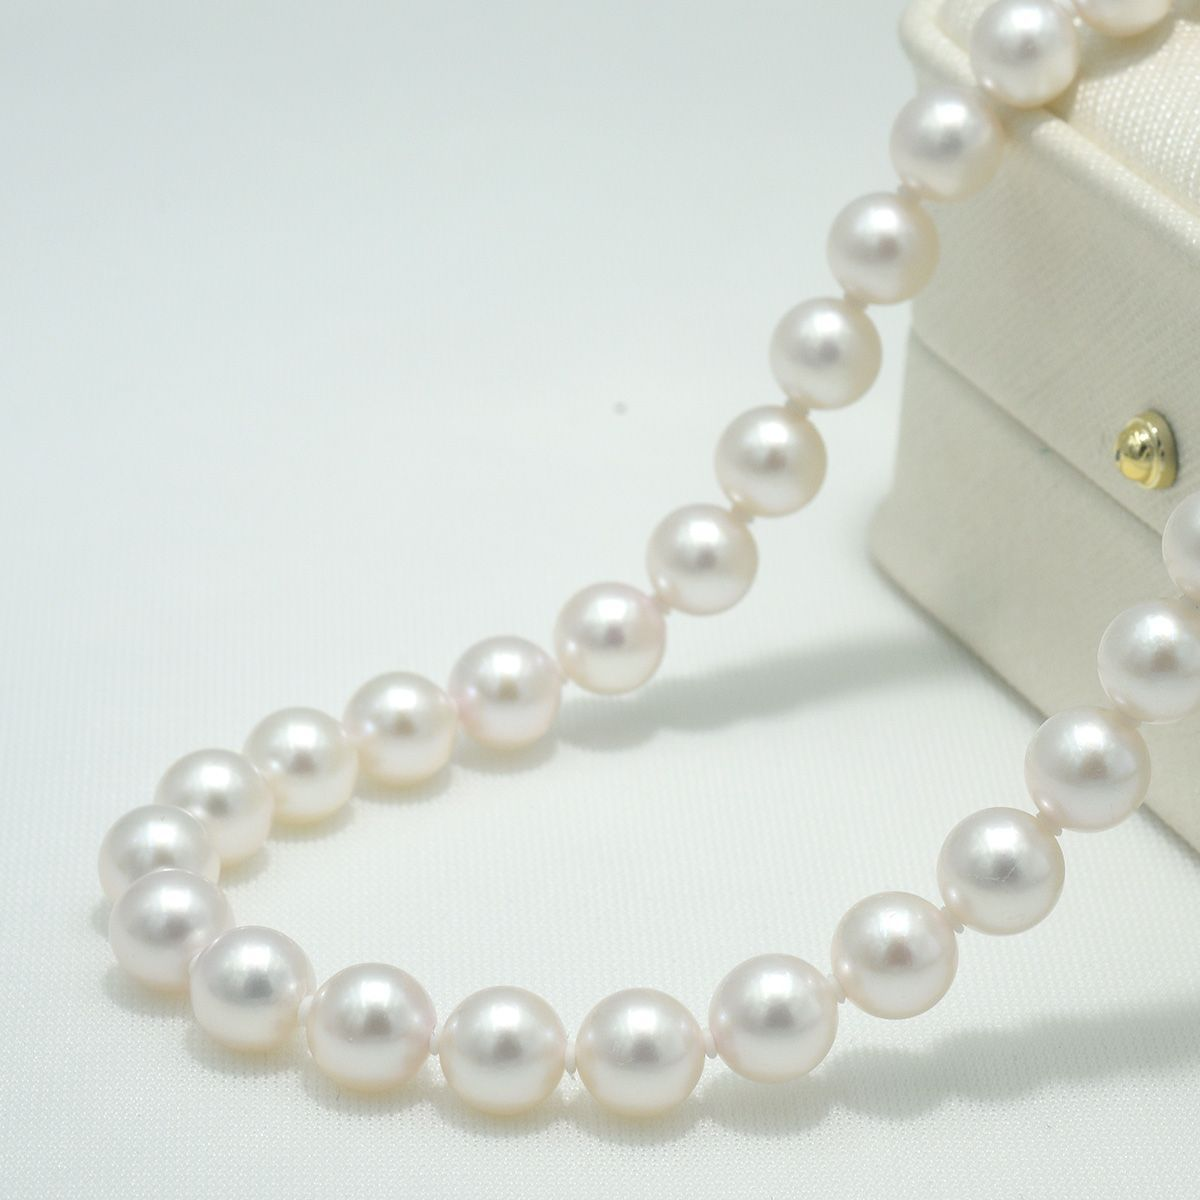 14k Yellow Gold Bead and 7mm White Pearl Chain Necklace 18inch